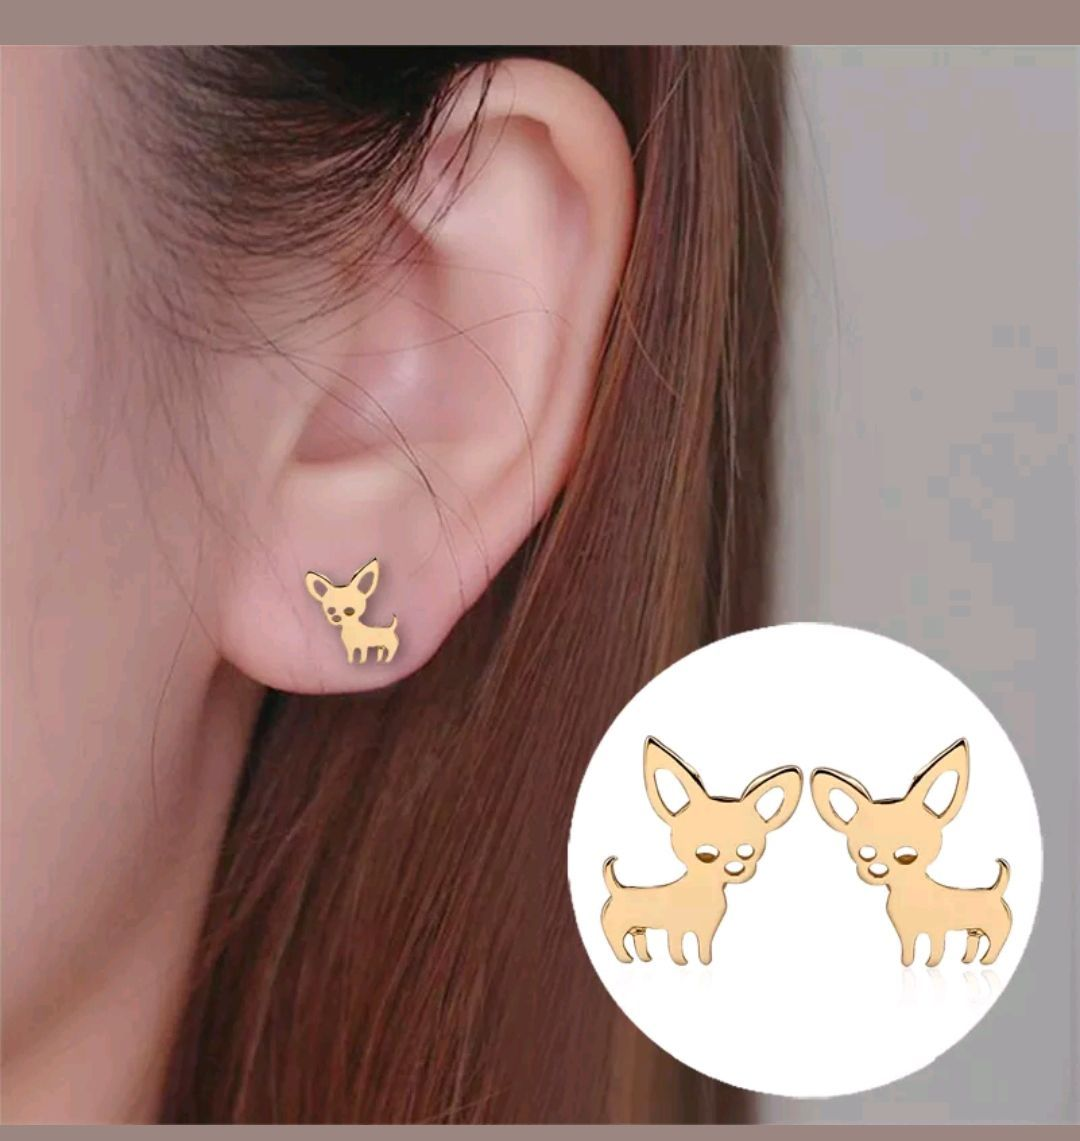 Chihuahua Stud Earrings Small Tiny Chihuahua Dog Stud Earrings Silver Gold Rose